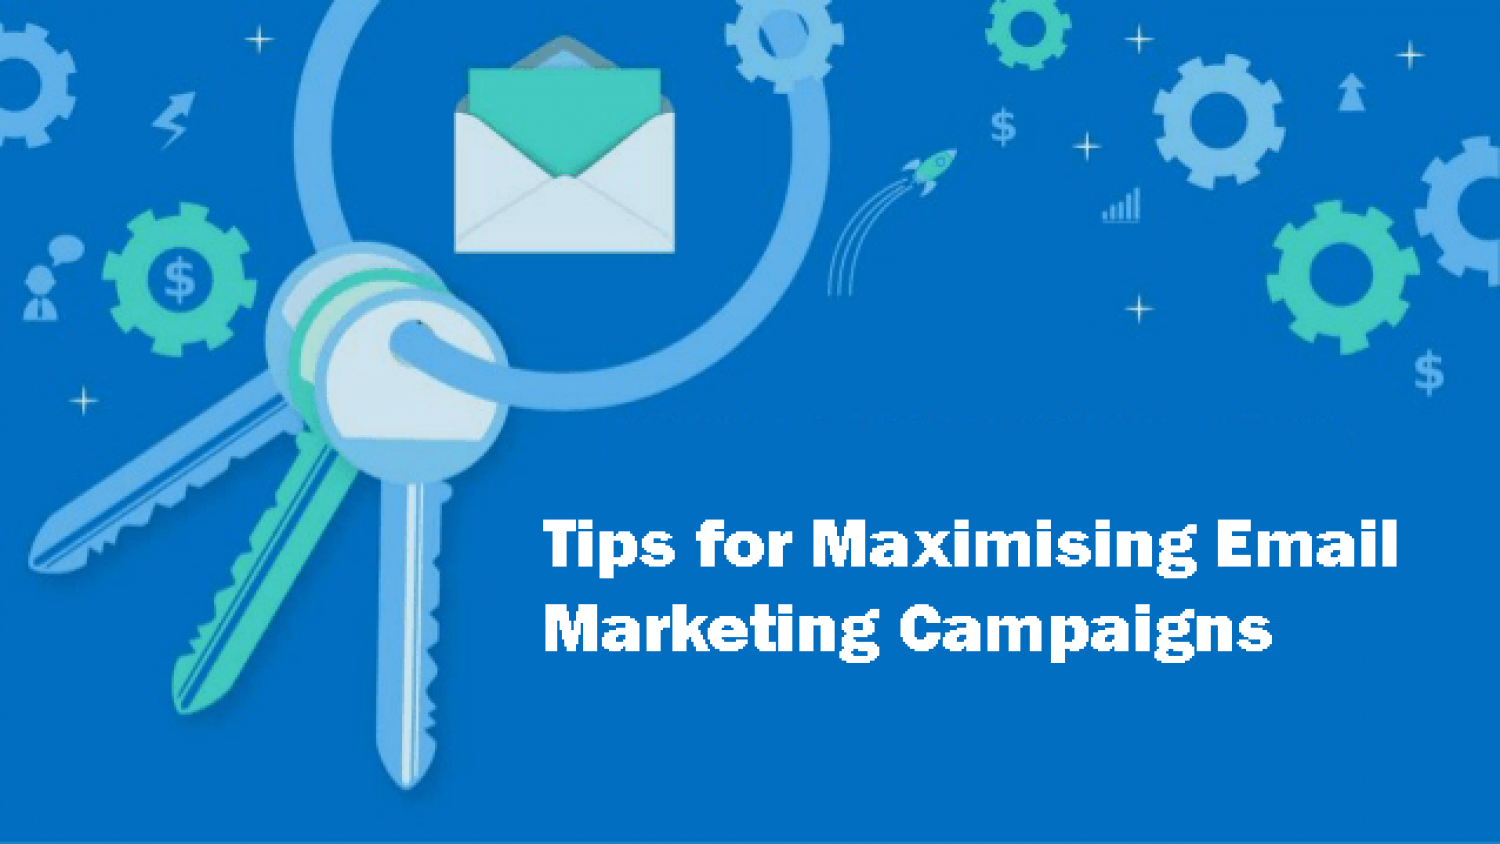 Tips for Maximizing Email Marketing Campaigns  Infographic